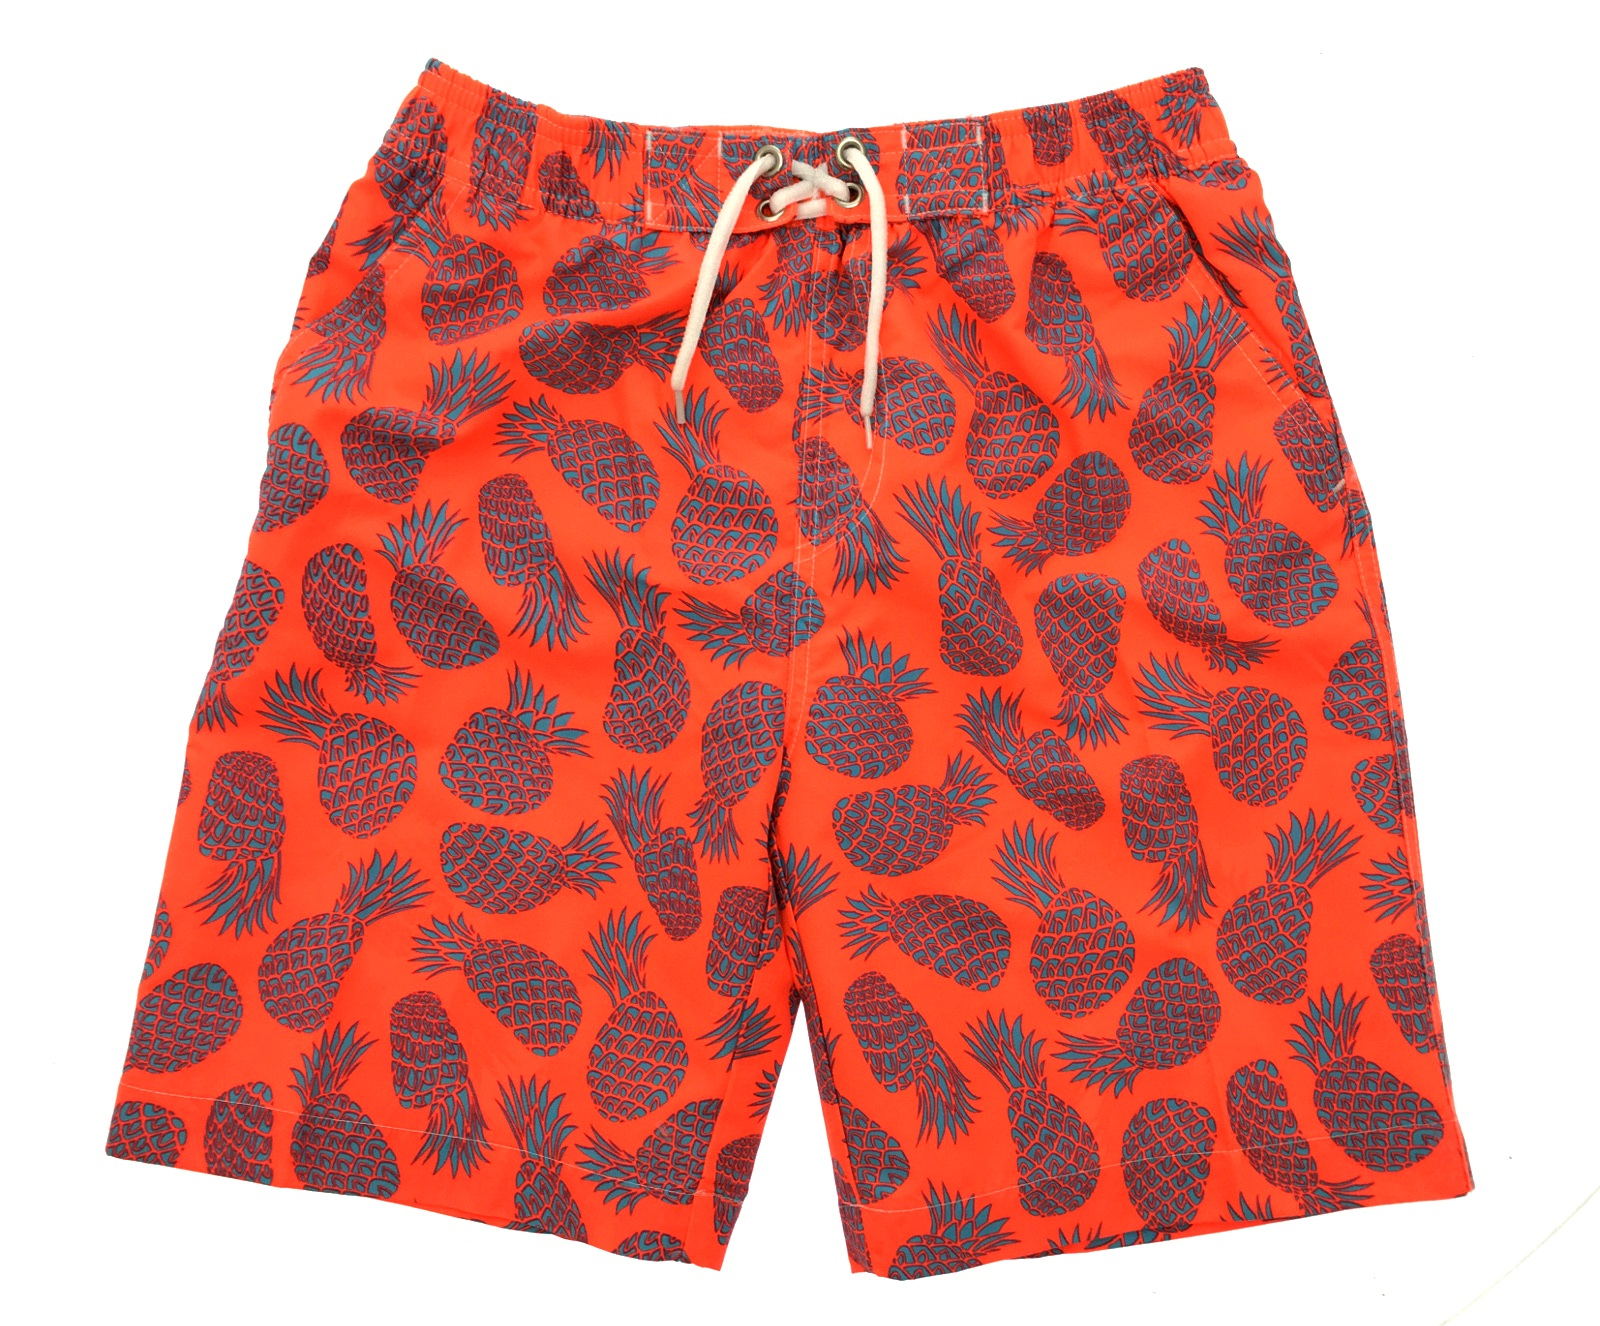 Shop for Kids' Swimwear at REI - FREE SHIPPING With $50 minimum purchase. Top quality, great selection and expert advice you can trust. % Satisfaction Guarantee.